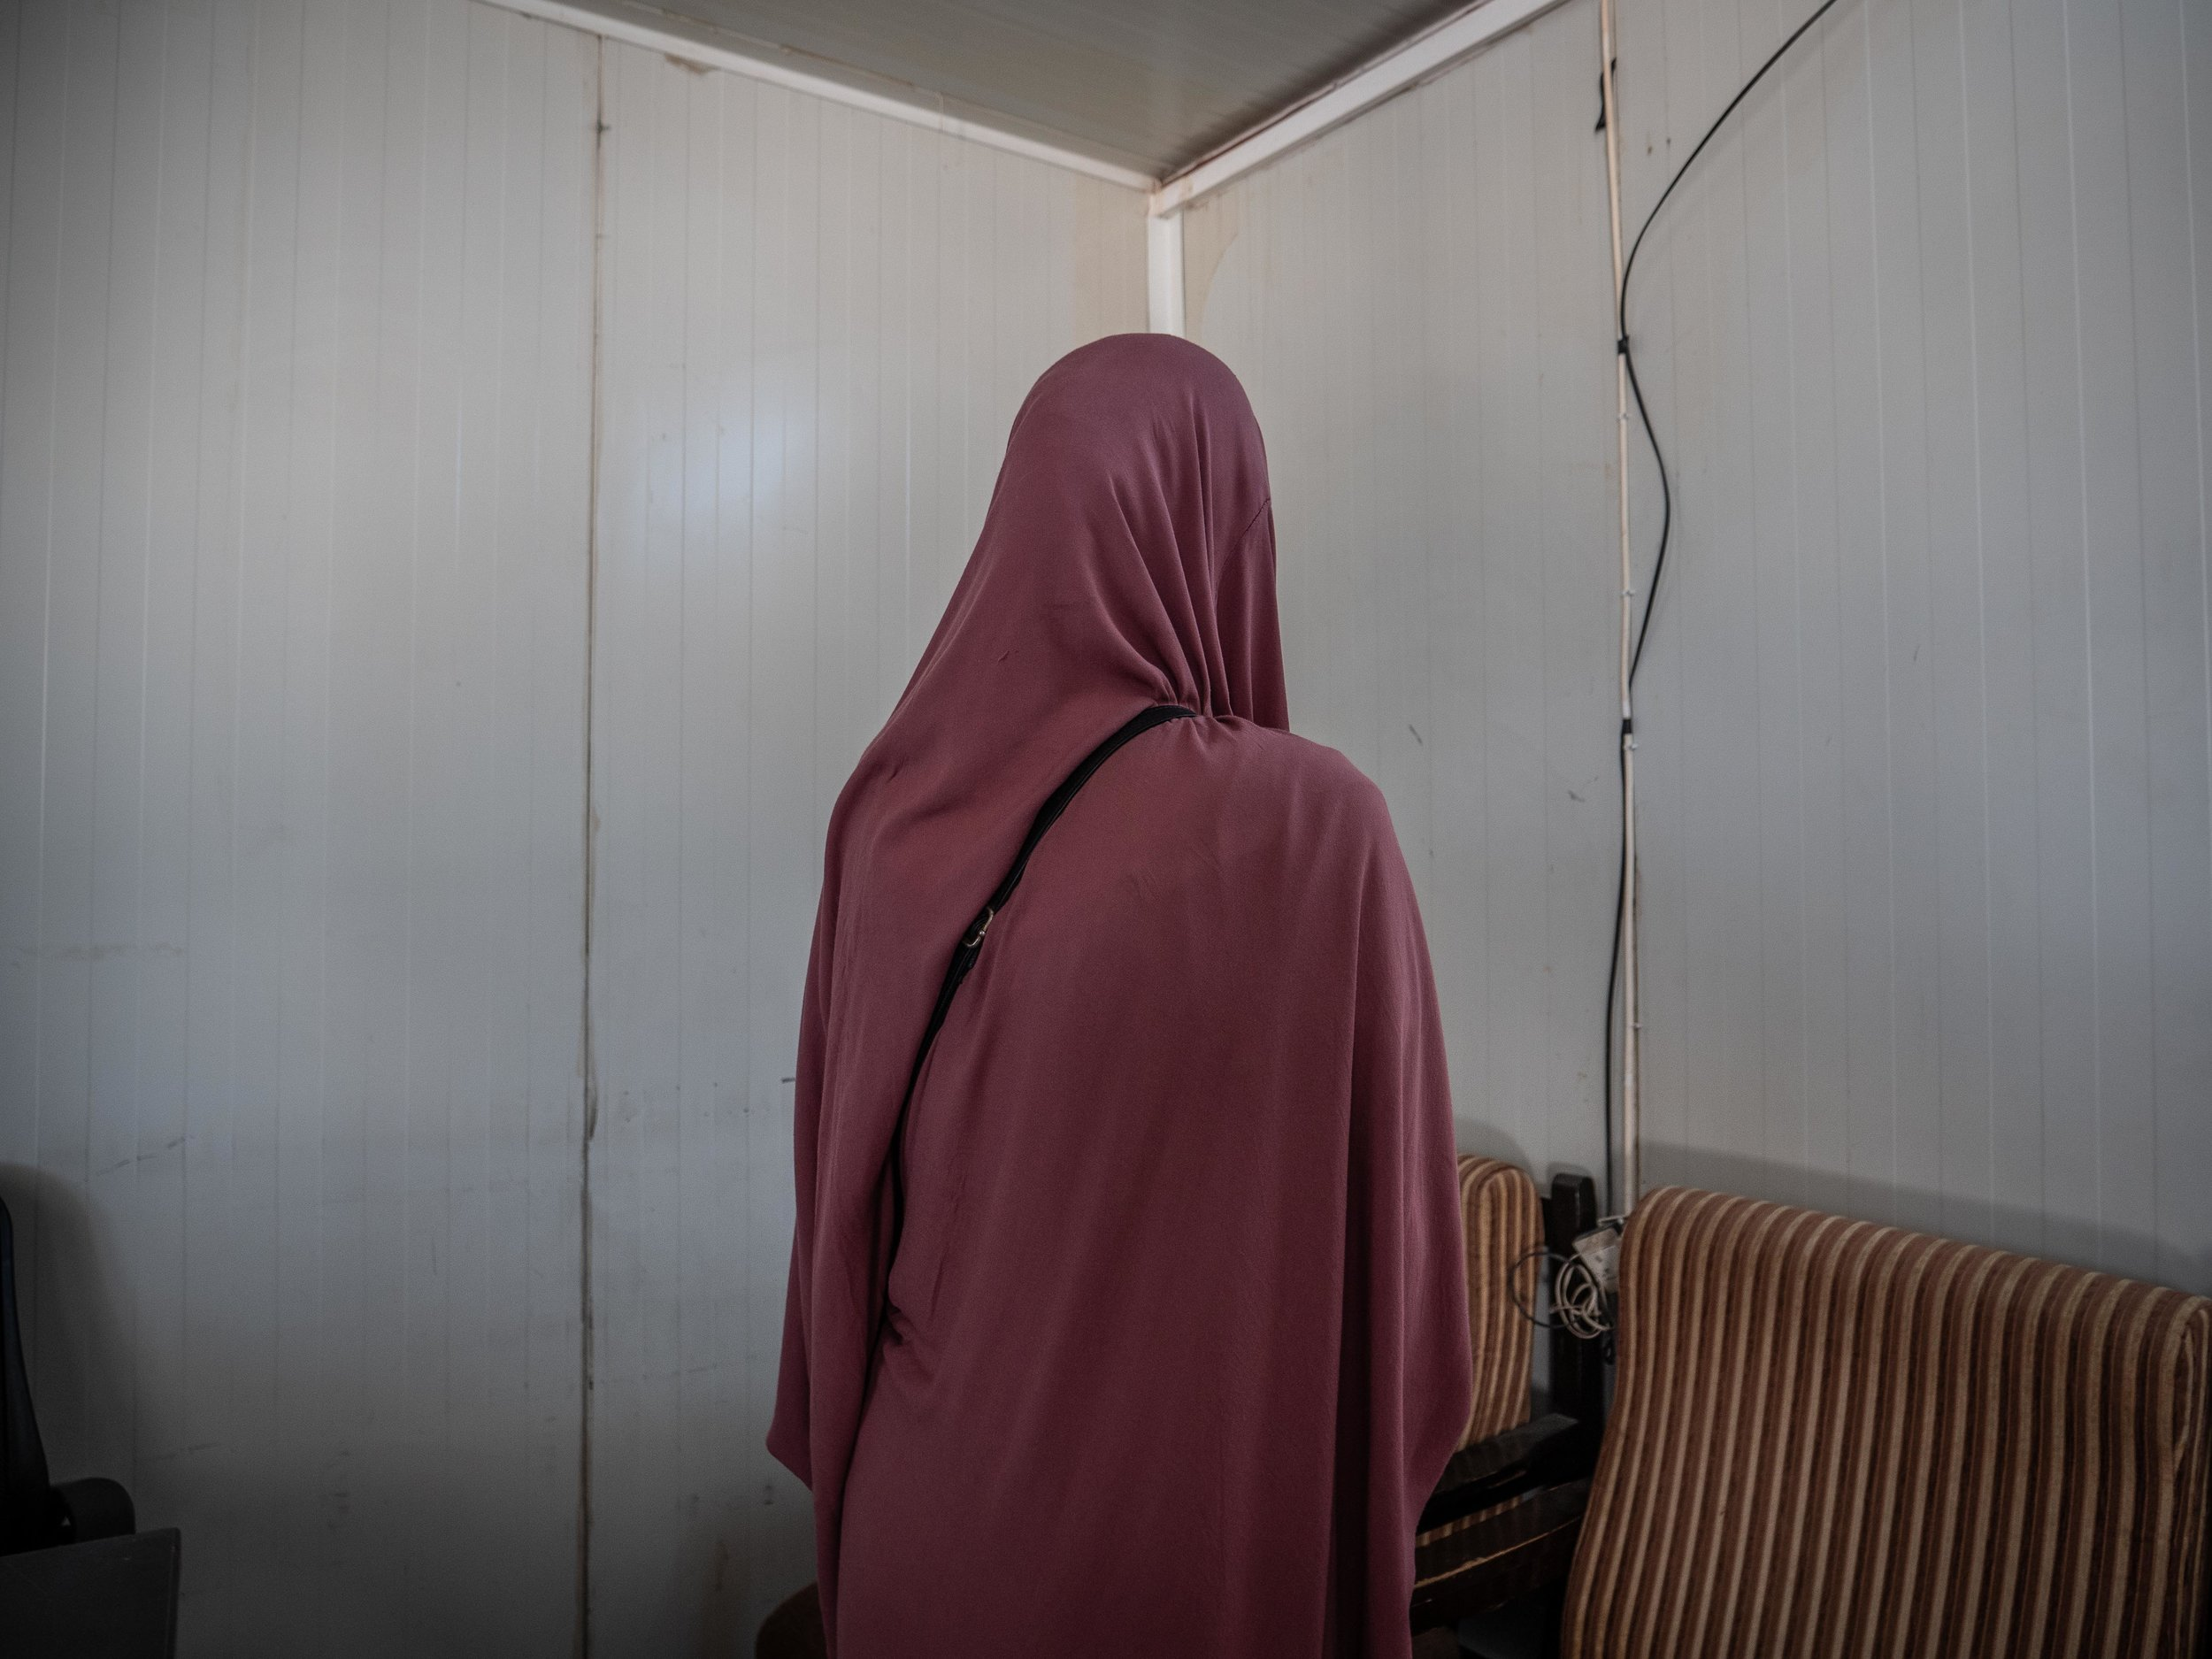 01/06/2019 - Roj Camp, Syria - Hayaam, 32, is a swiss citizen who traveled to Raqqa to join the Islamic State in 2015 together with her husband. She now lives in a detention camp in Northern Syria with her 2 year old daughter.